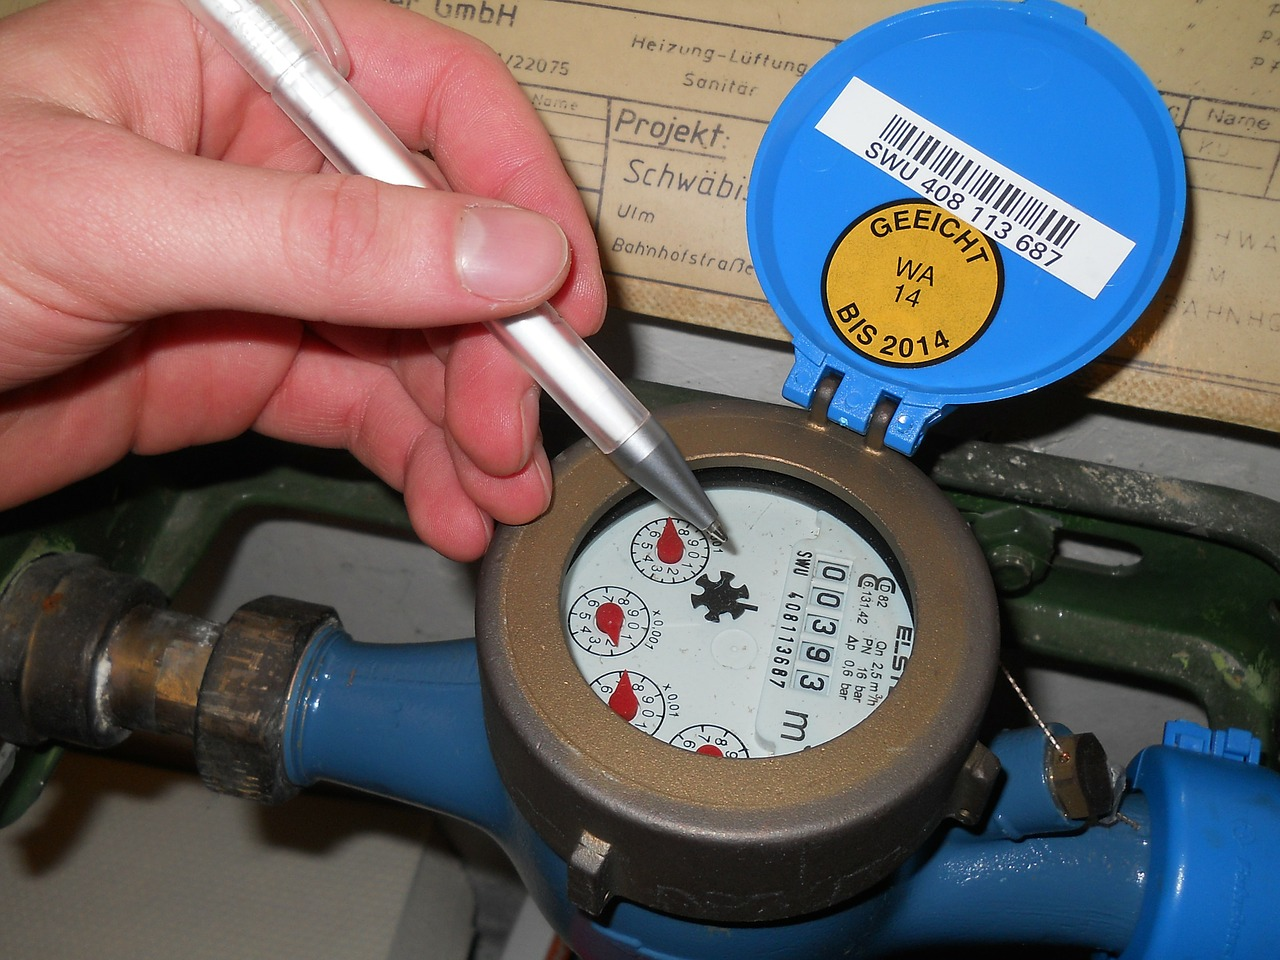 Are you keeping an eye on the hotel water meter? Preventative maintenance is the best way to reduce hotel water usage and costs.